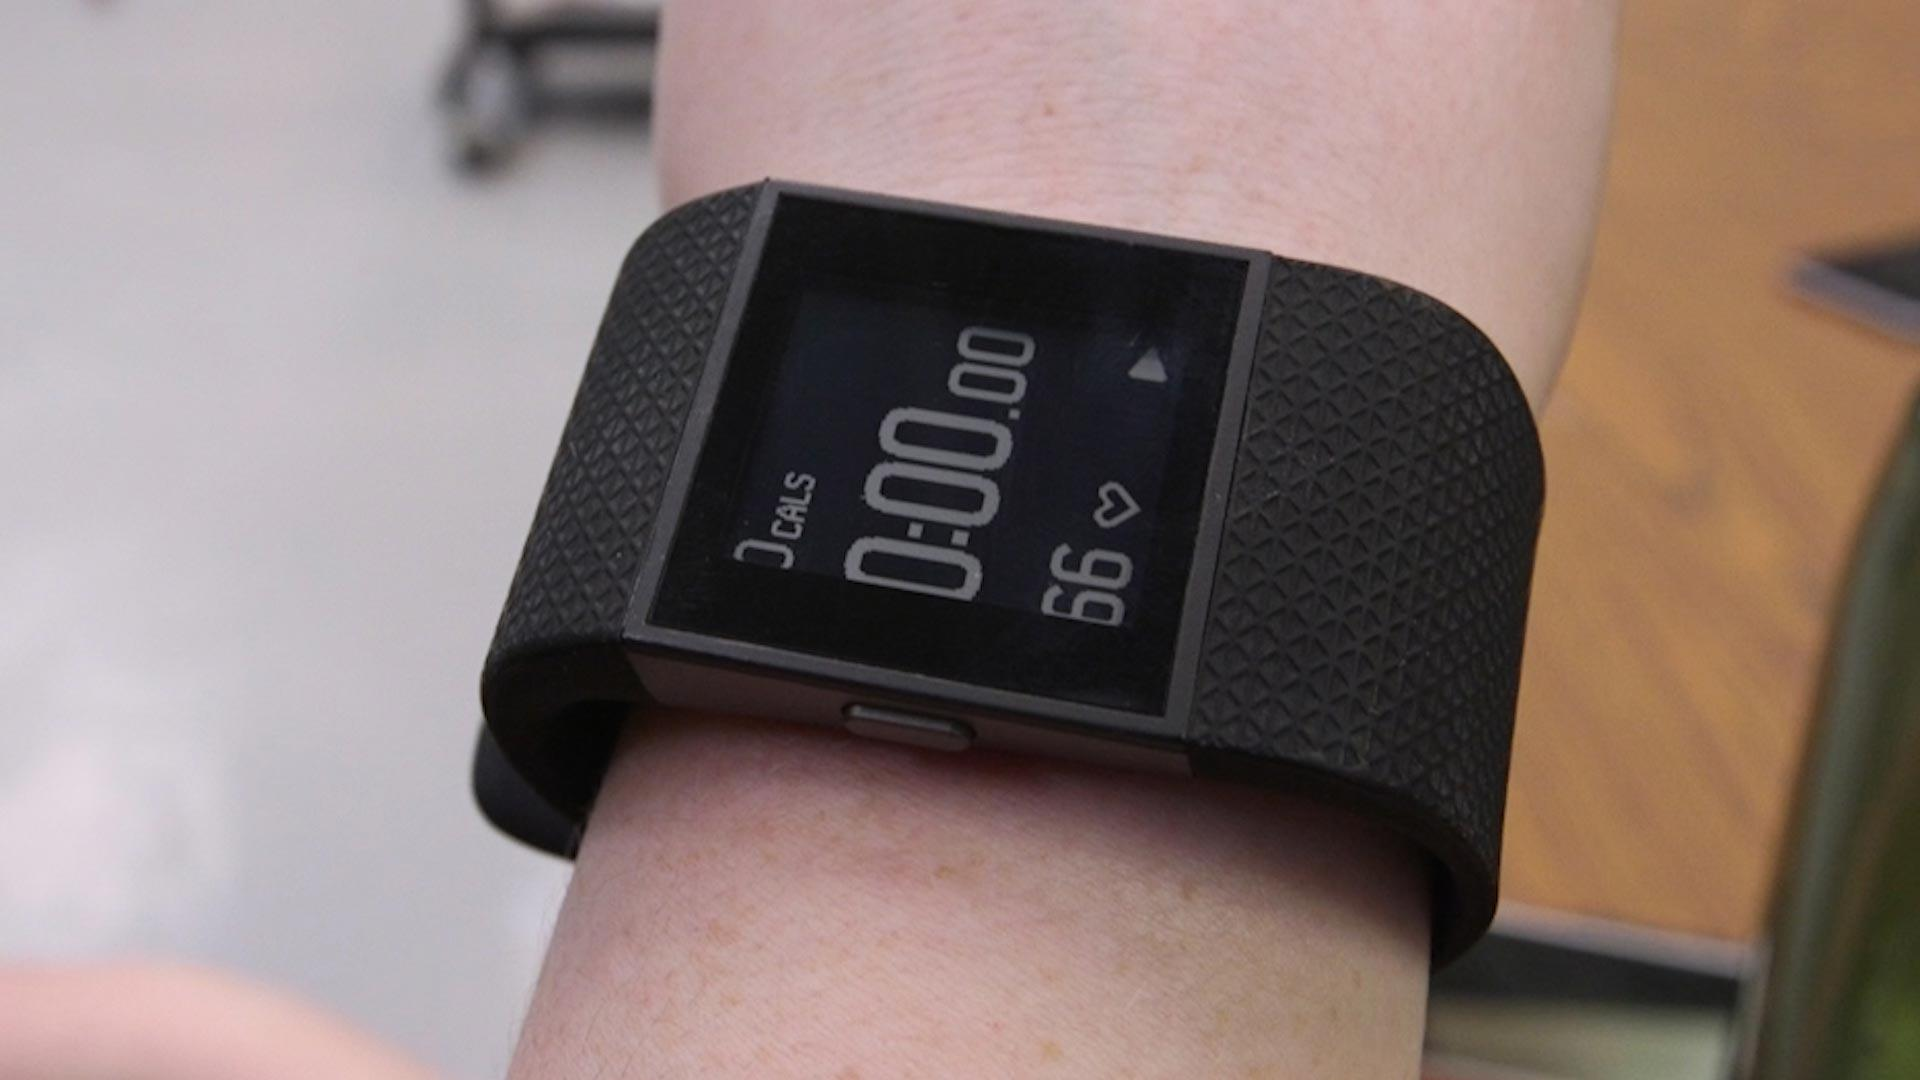 pics Heres How Your Fitbit Measures Up To The Competition